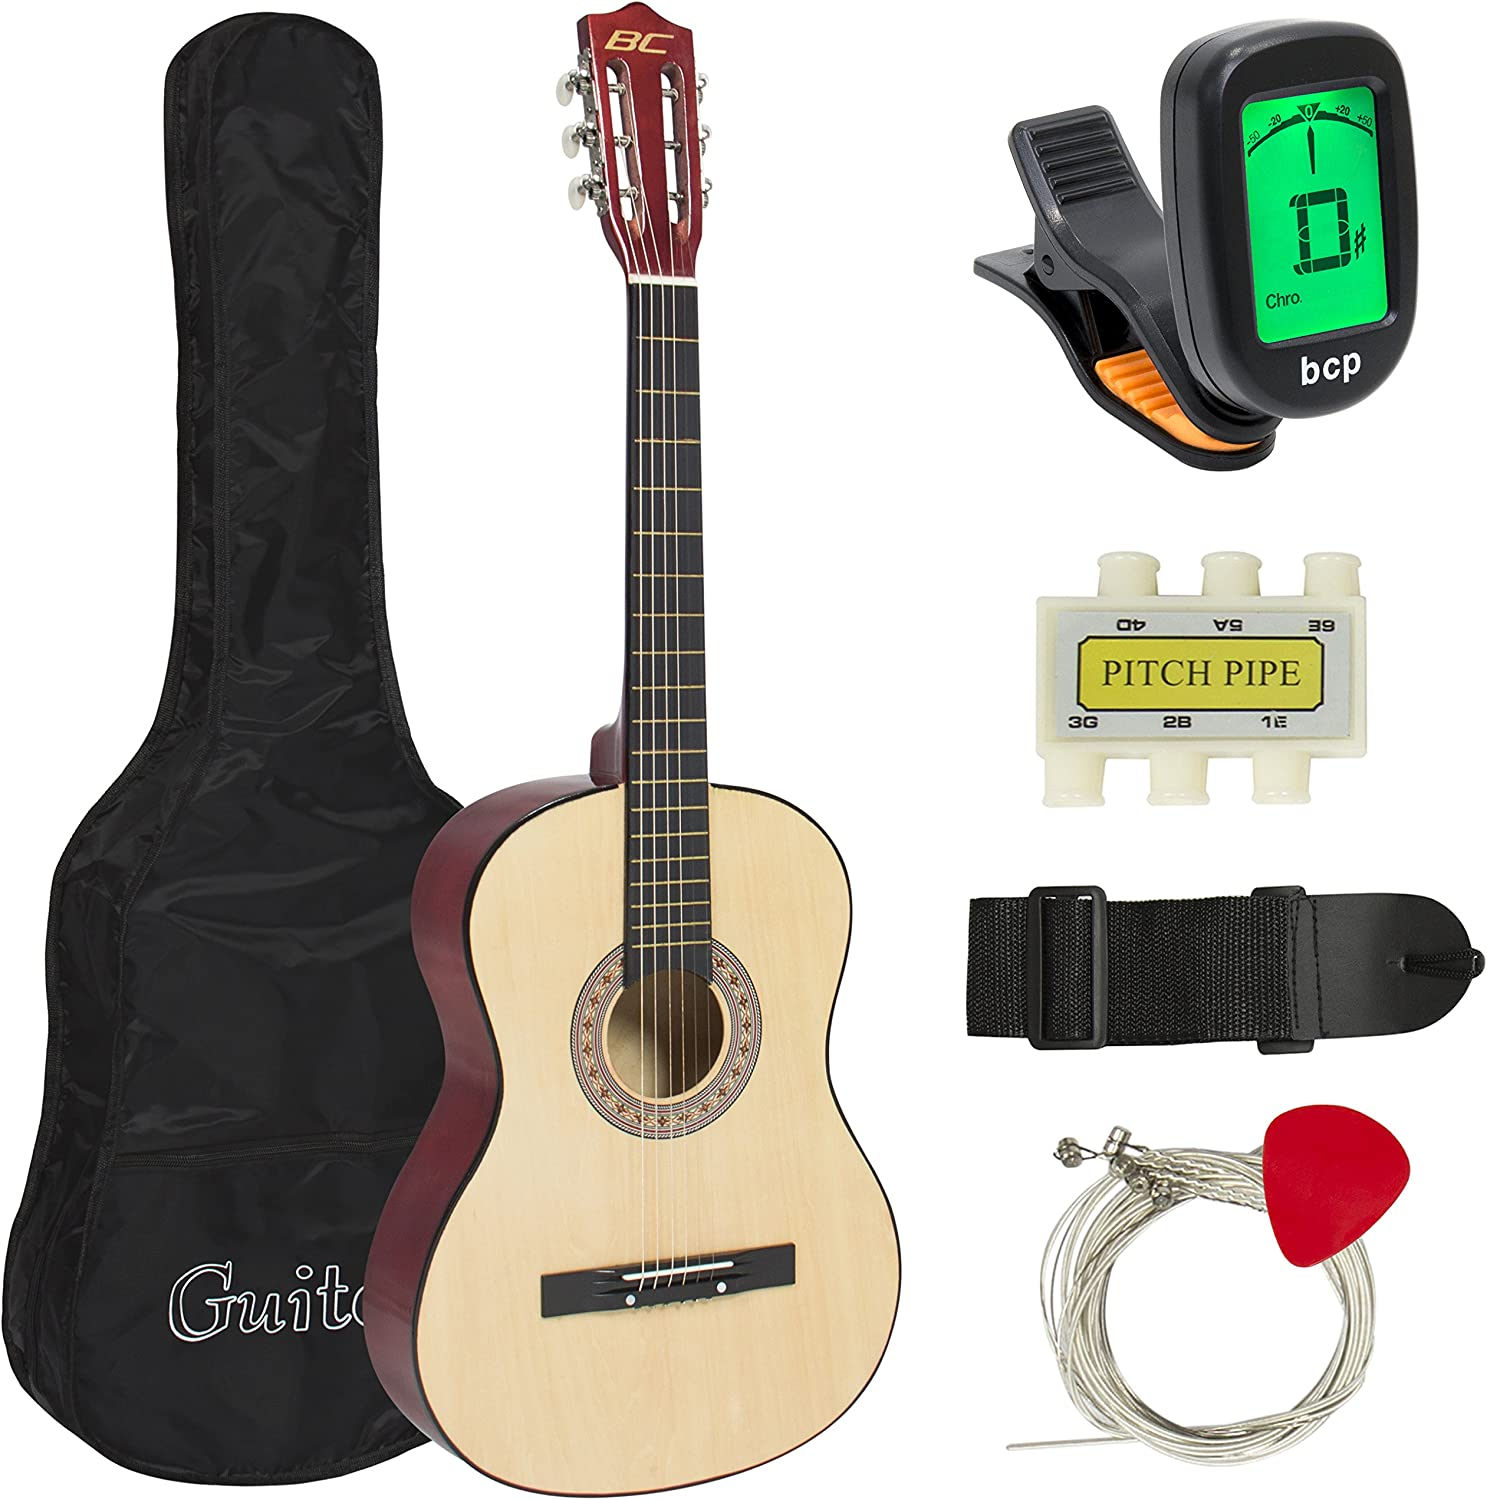 Best Choice Products 38in Beginner Acoustic Guitar Starter Kit w/Case, Strap, Digital E-Tuner, Pick, Pitch Pipe, Strings (Natural)